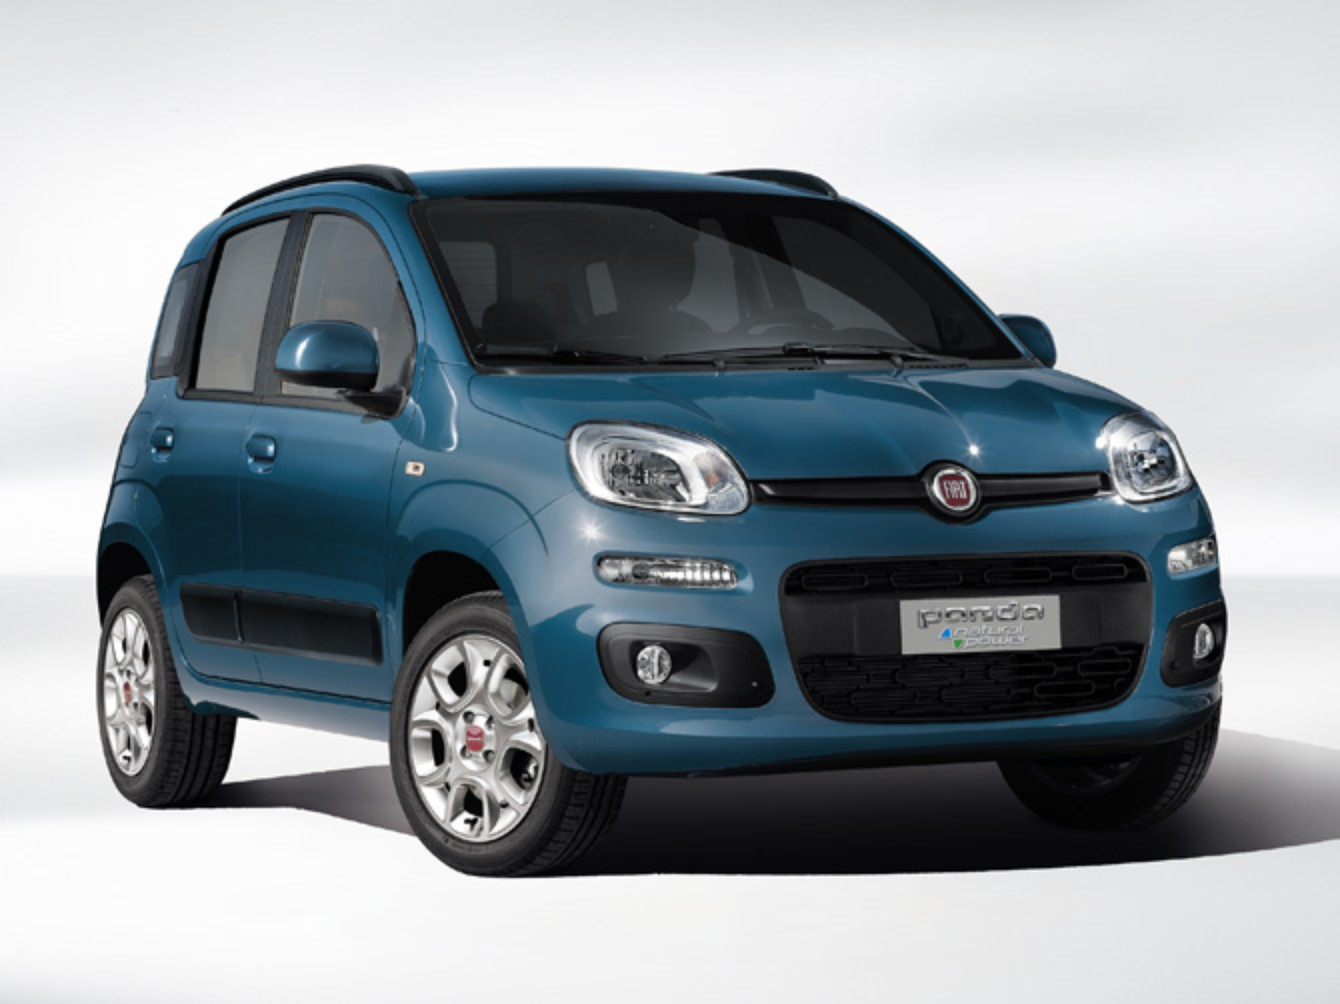 fiat panda l 39 auto pi venduta in italia a luglio 2014. Black Bedroom Furniture Sets. Home Design Ideas